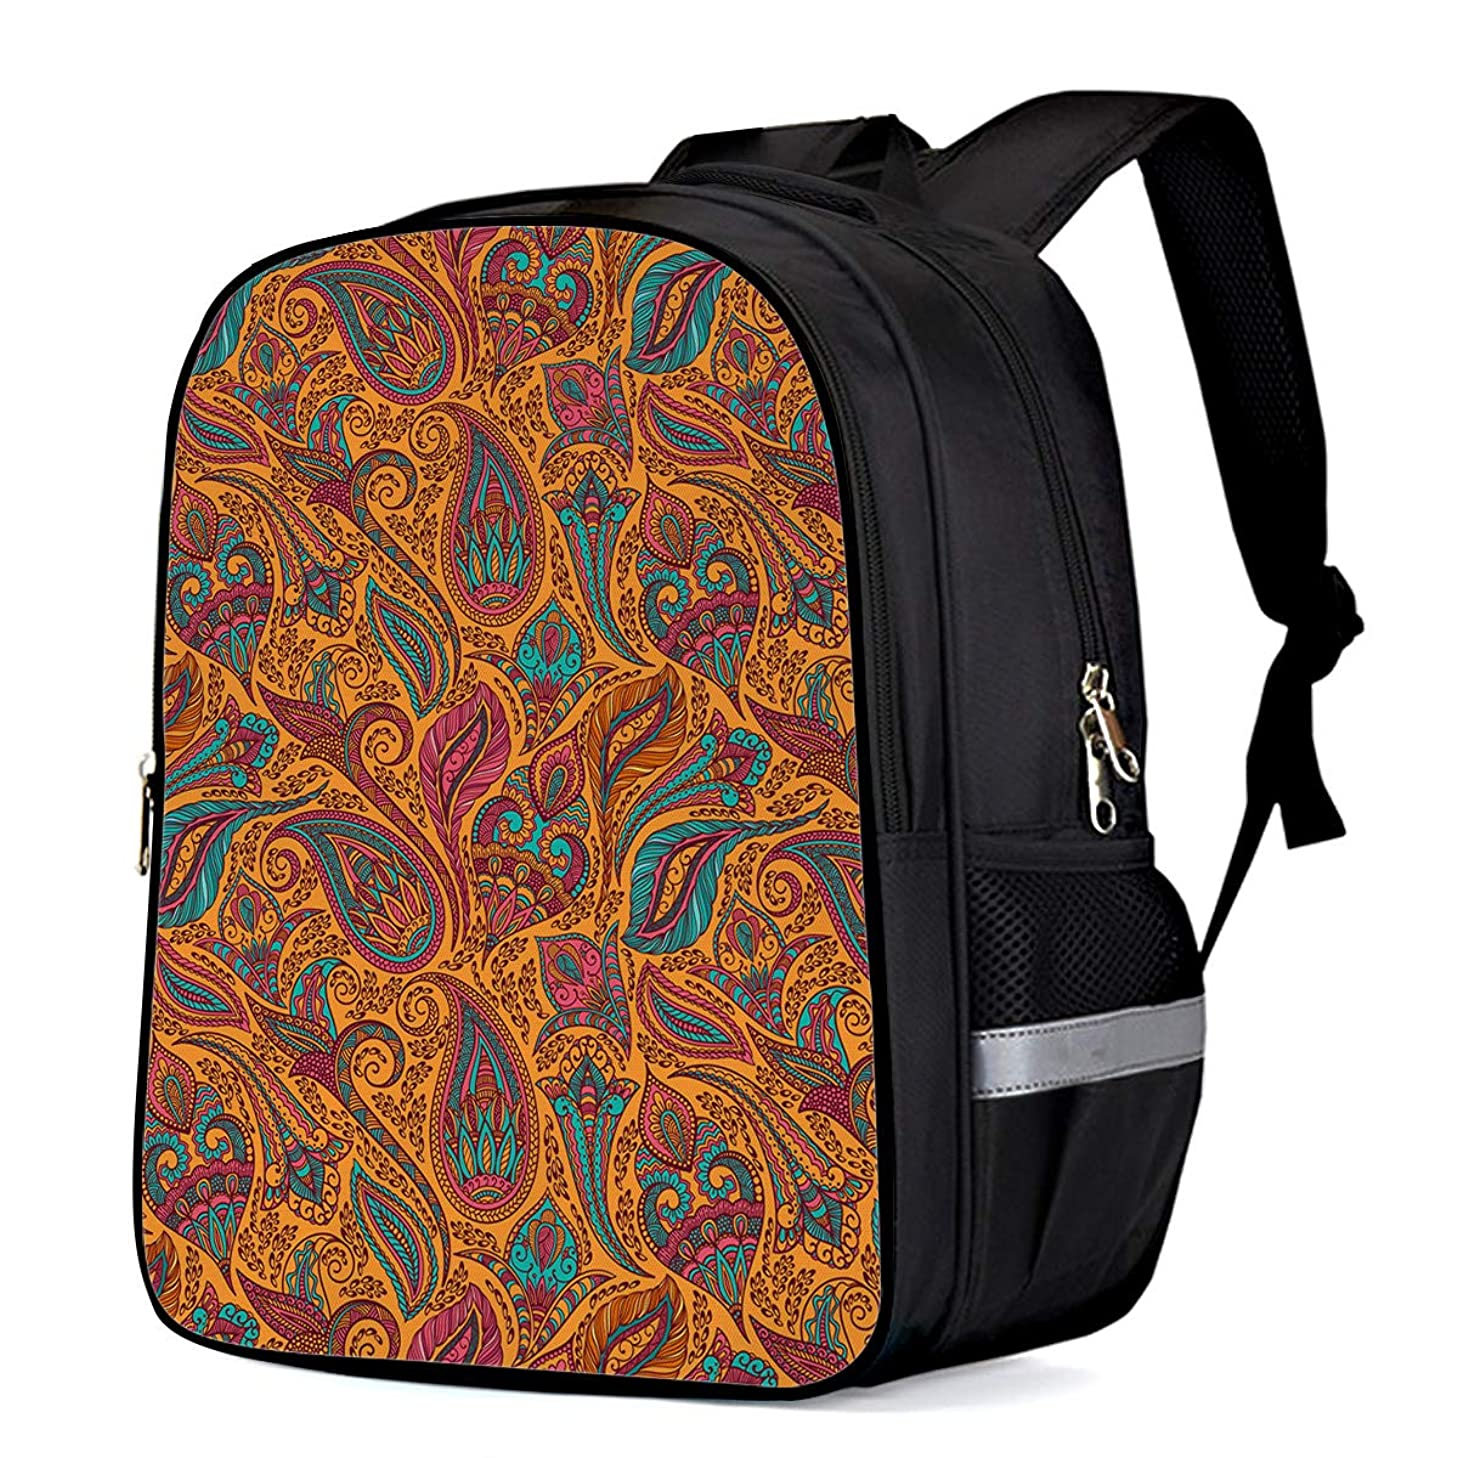 Water Resistant School Backpack, Traditional Indian Patterns Oxford 3D Print College Student Rucksack Daypack for School Camping Travel 33x28x16cm